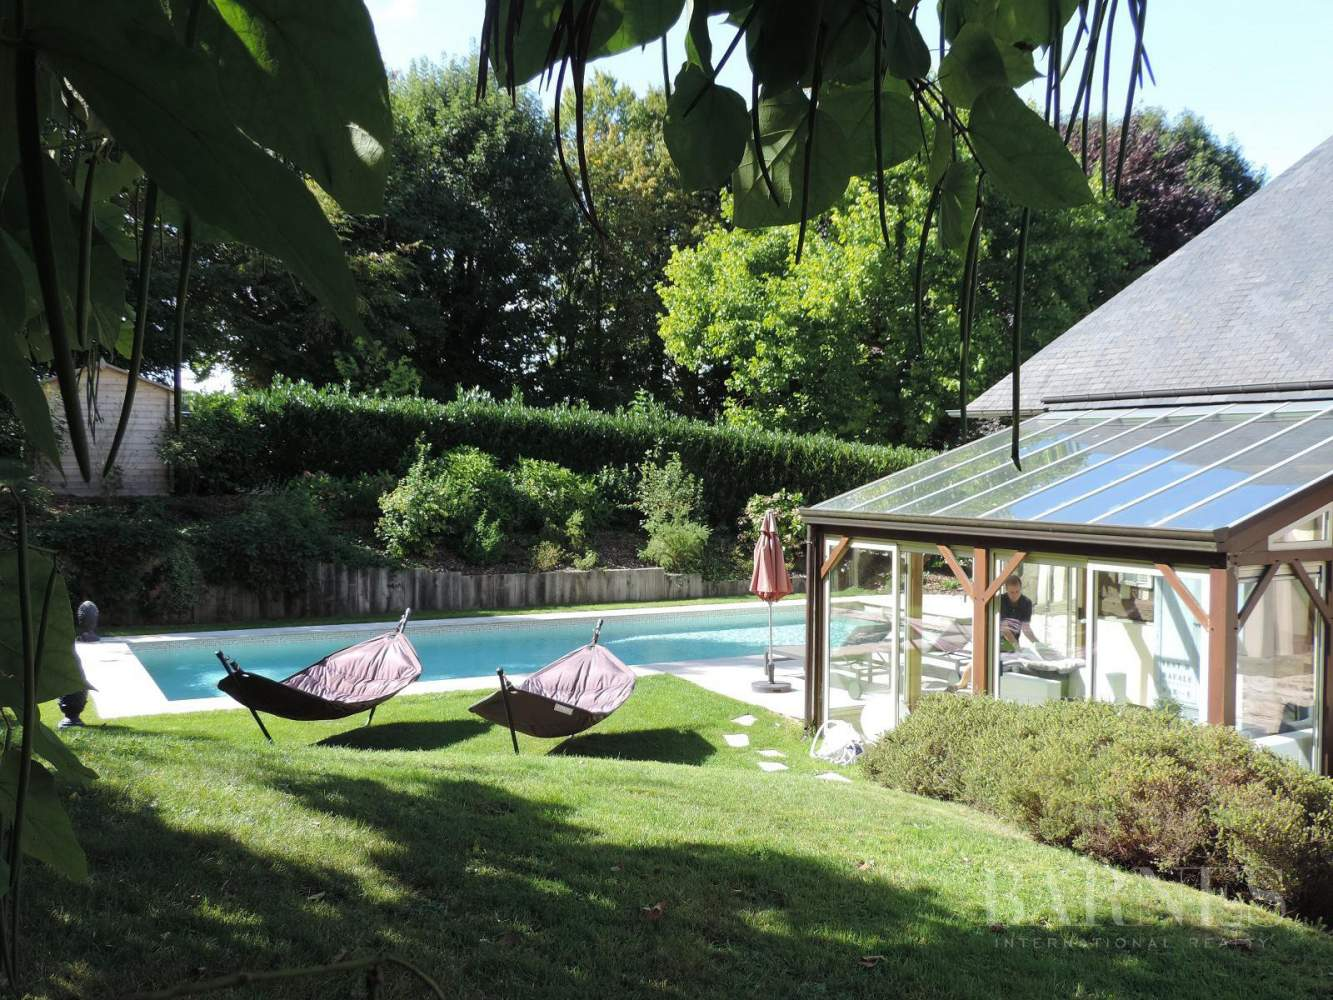 Near Deauville Property with character - 5 bedrooms - heated pool, tennis court, 2.47-acre landscaped park picture 12